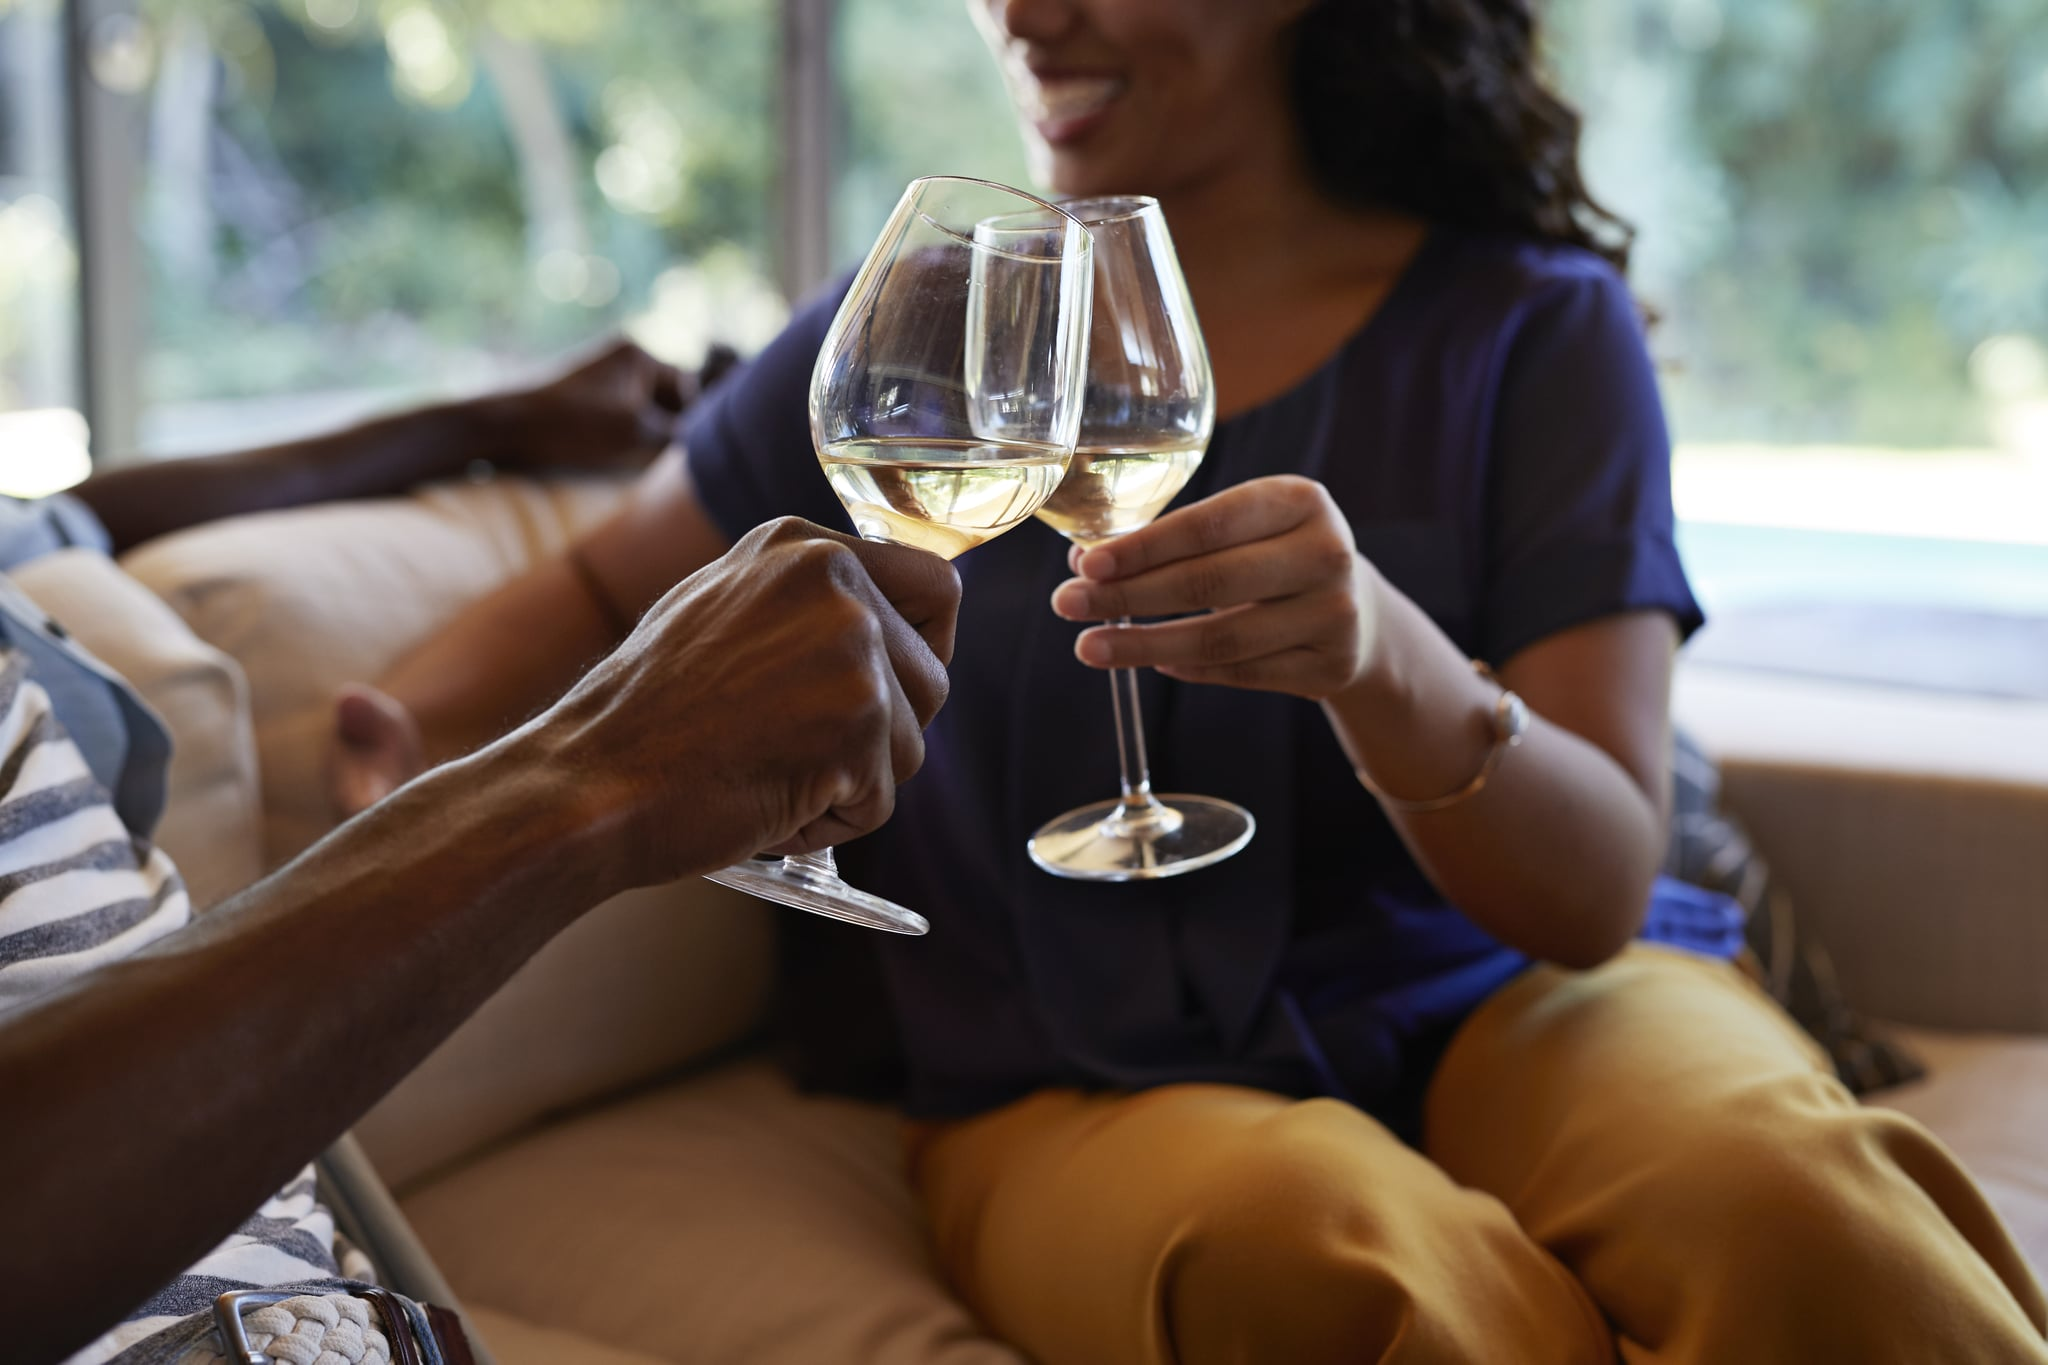 More couples are staying in, drinking wine and watching telly - The Couple  Connection